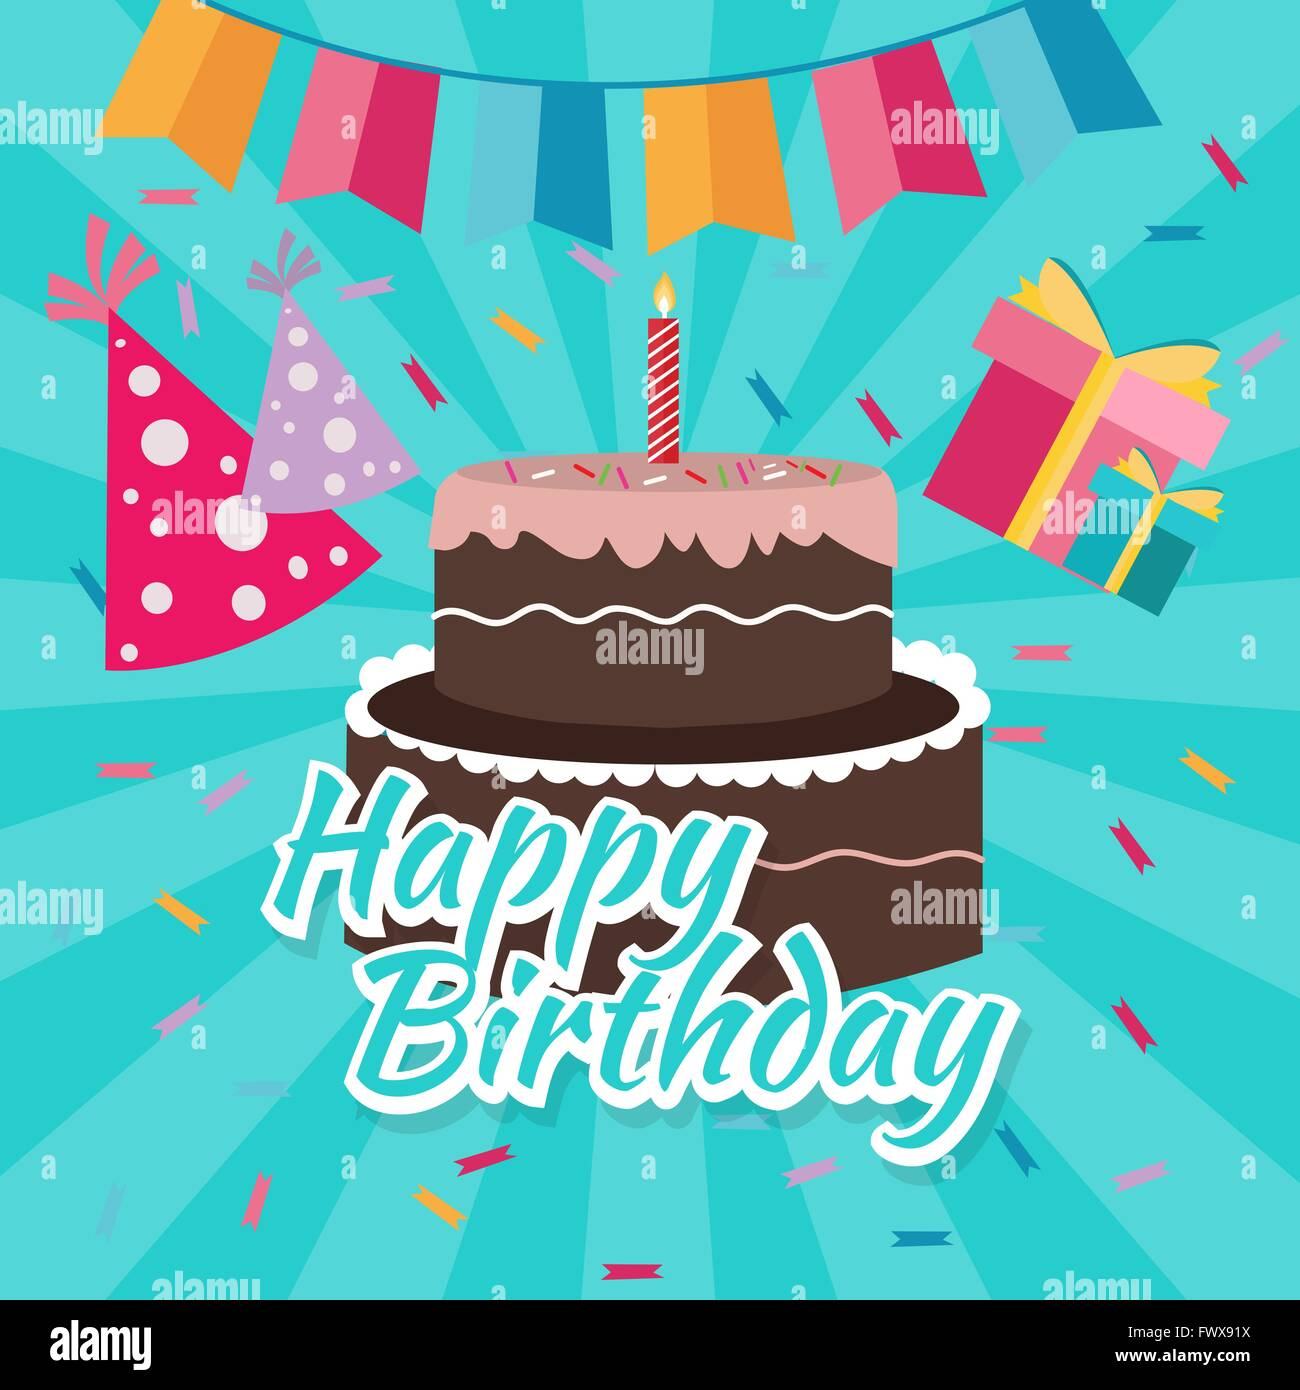 Celebrate Happy Birthday Cake Flat Illustration Vector Greetings